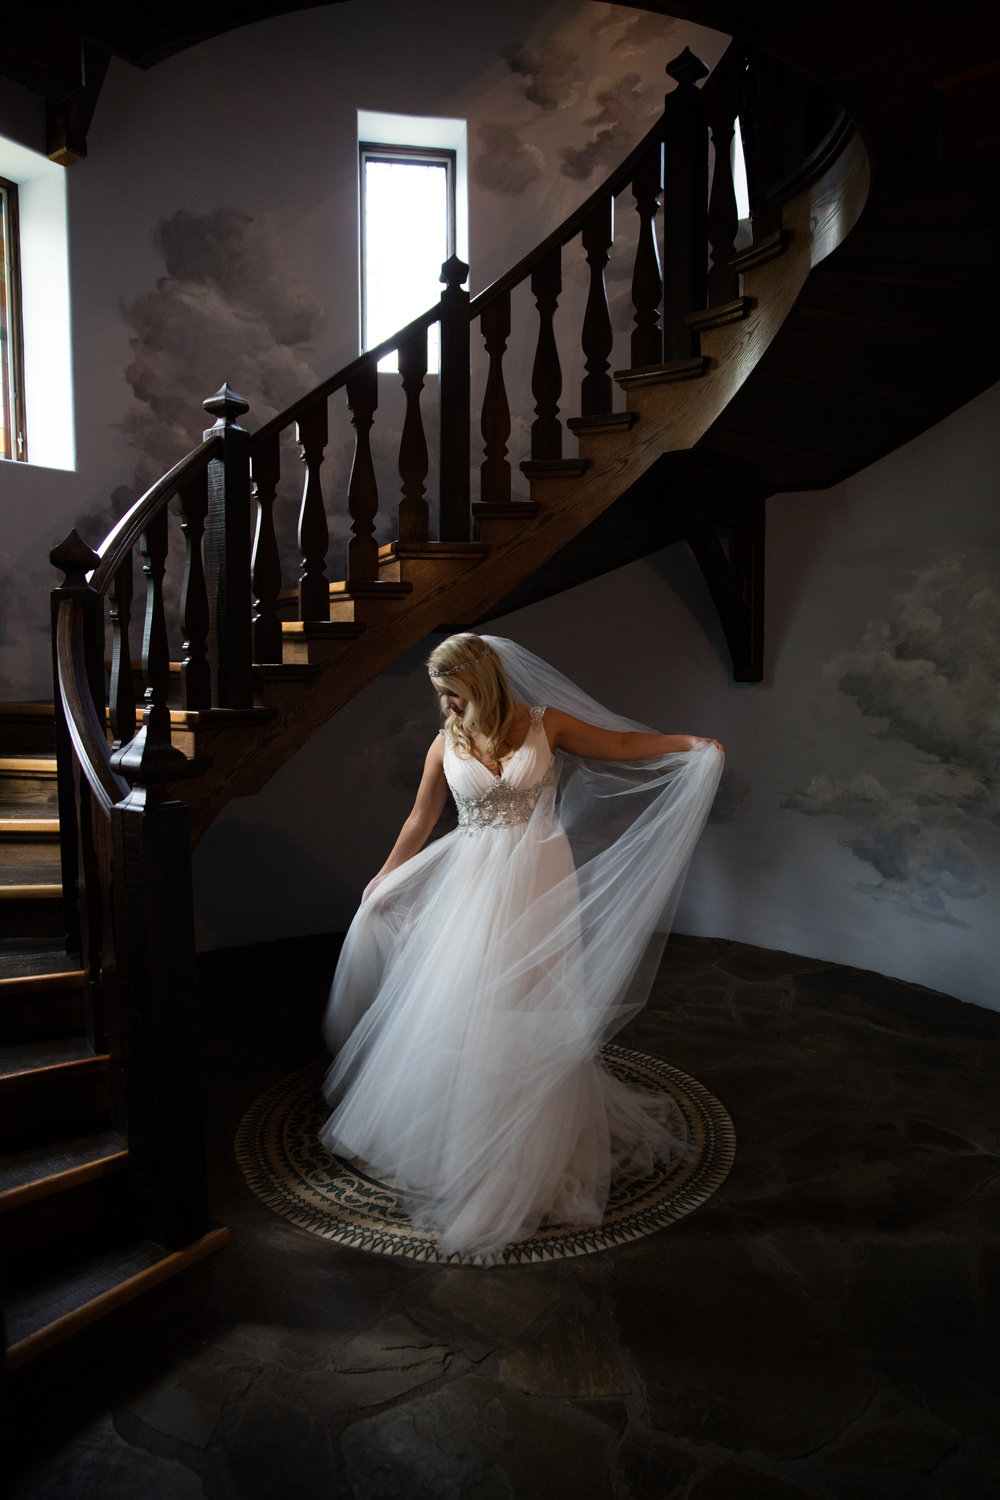 Wedding photography bridal portrait long veil staircase castle wedding